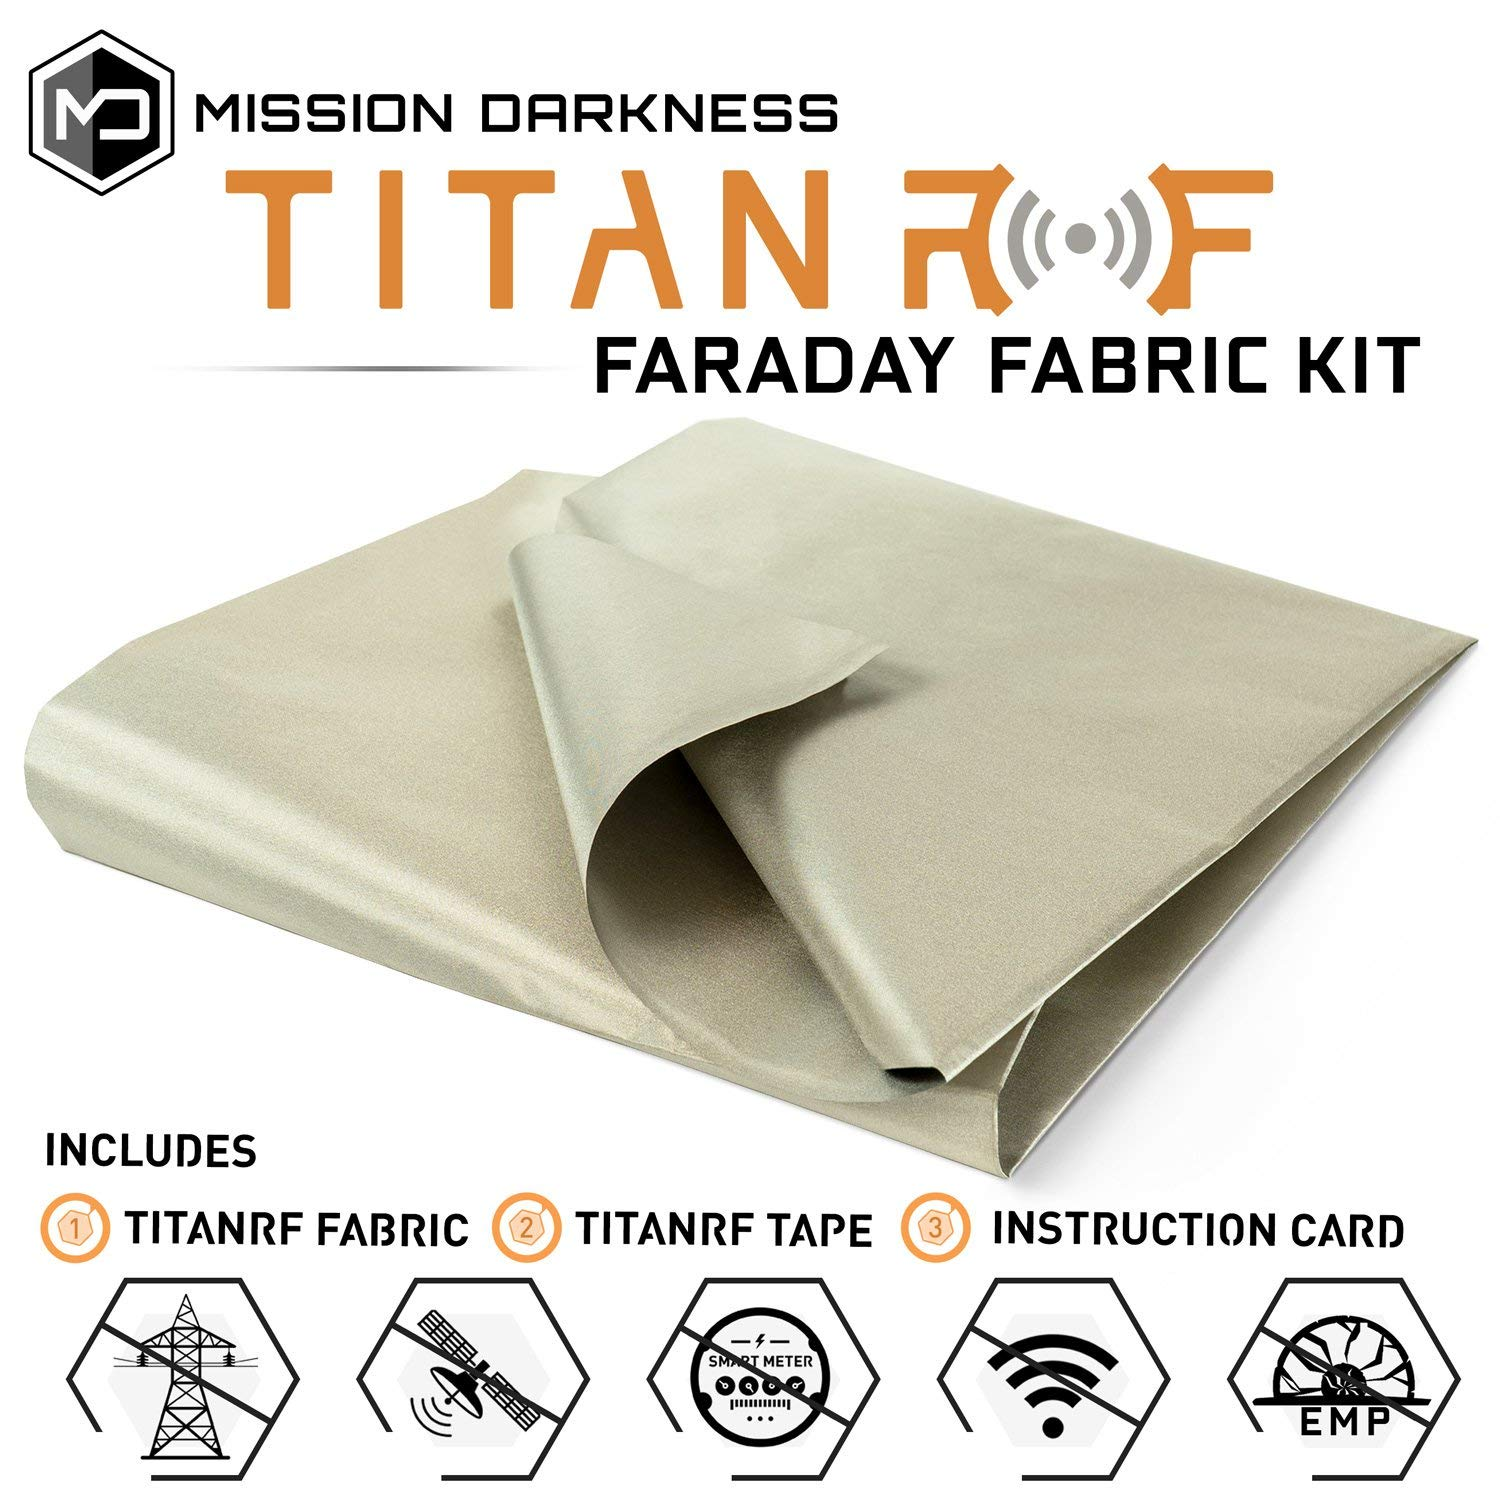 TitanRF Faraday Fabric // EMI & RFID Shielding/Cell, WiFi & Bluetooth Blocking/Military Grade Shielding Fabric (44''W x 36'' L / 11sq ft / 1.22 sq yds) + Free 12'' L Conductive Adhesive Tape by Mission Darkness